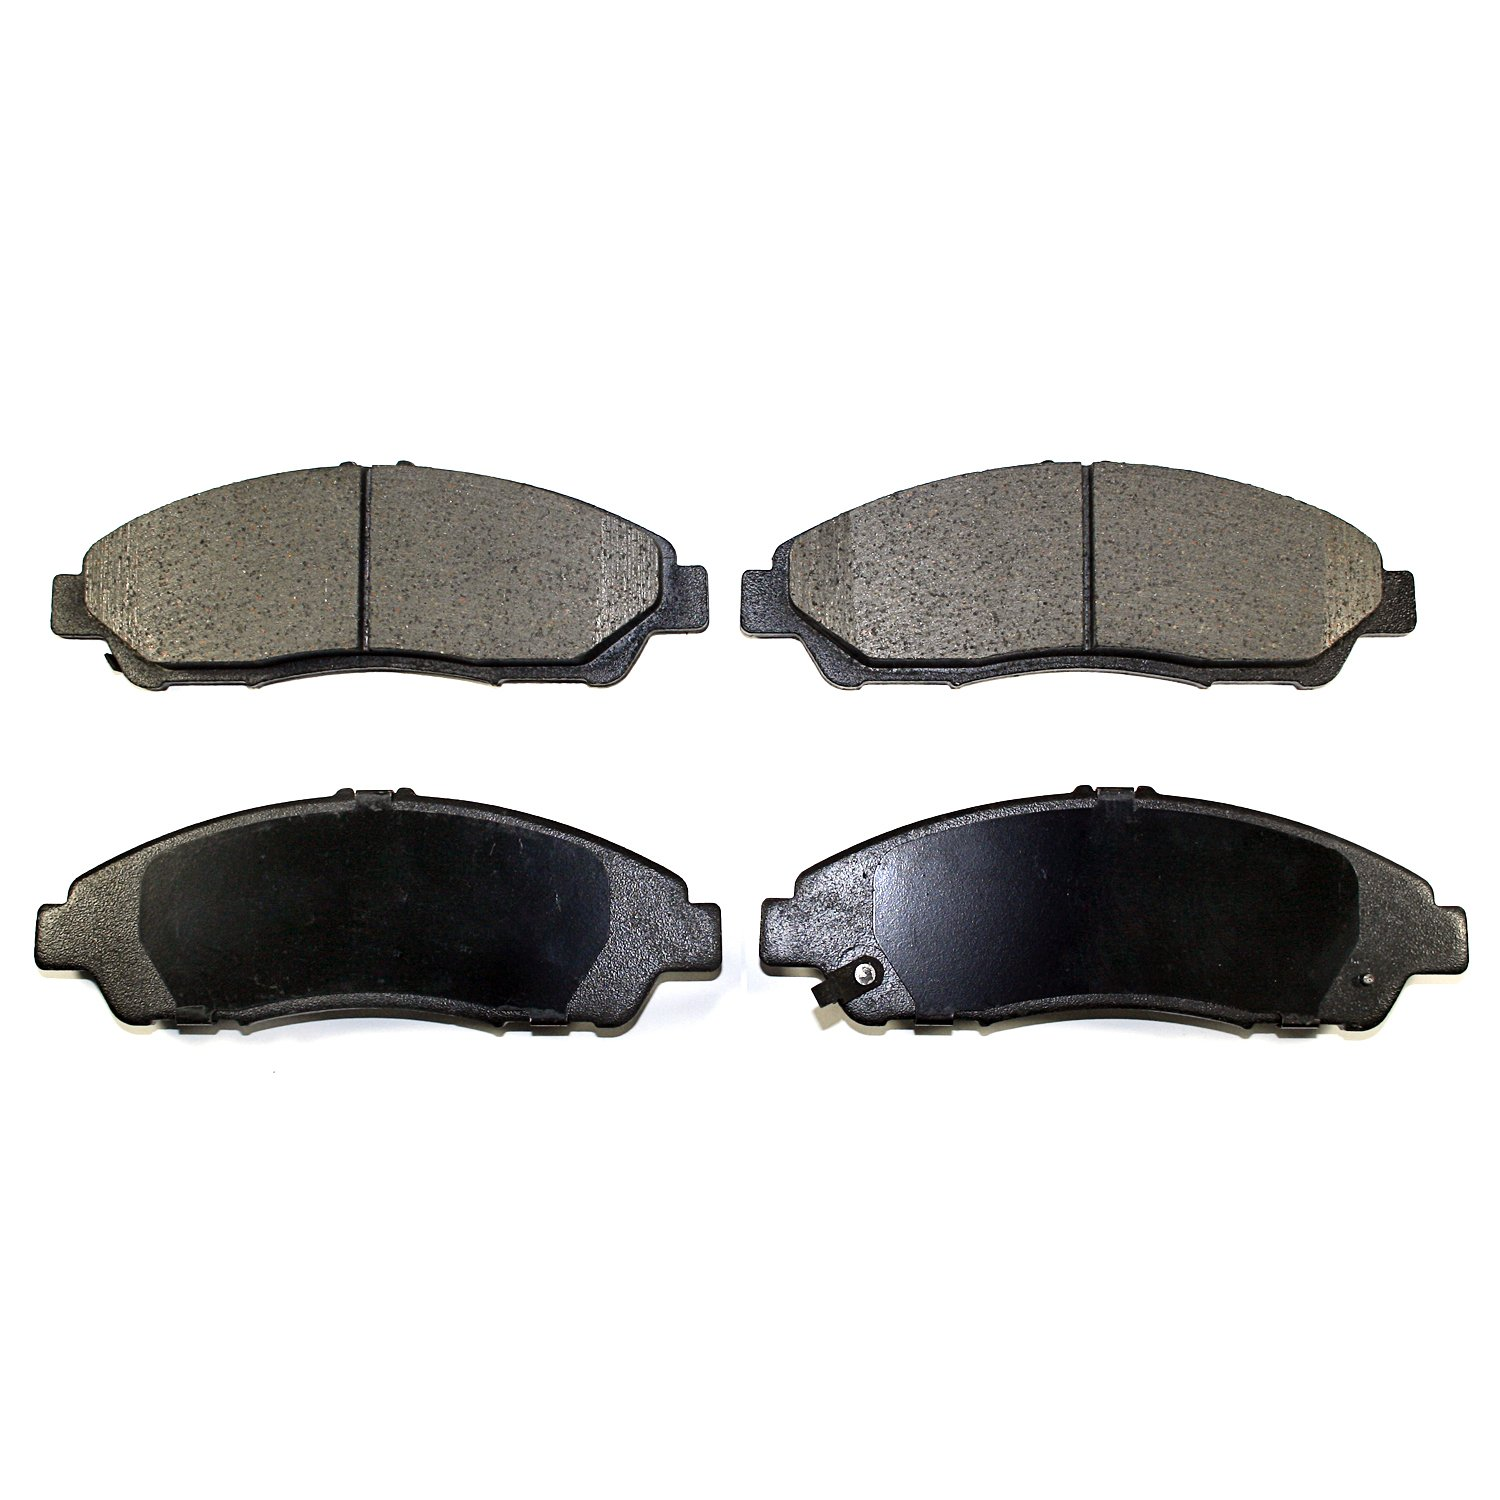 4pcs Drilled Slotted Brake Rotors and 8pcs Ceramic Disc Brake Pads fit for 2007 2008 2009 2010 2011 Dodge Nitro,2008 2009 2010 2011 2012 Jeep Liberty 818477-5206-1403190431 SCITOO Brakes and Rotors Kit